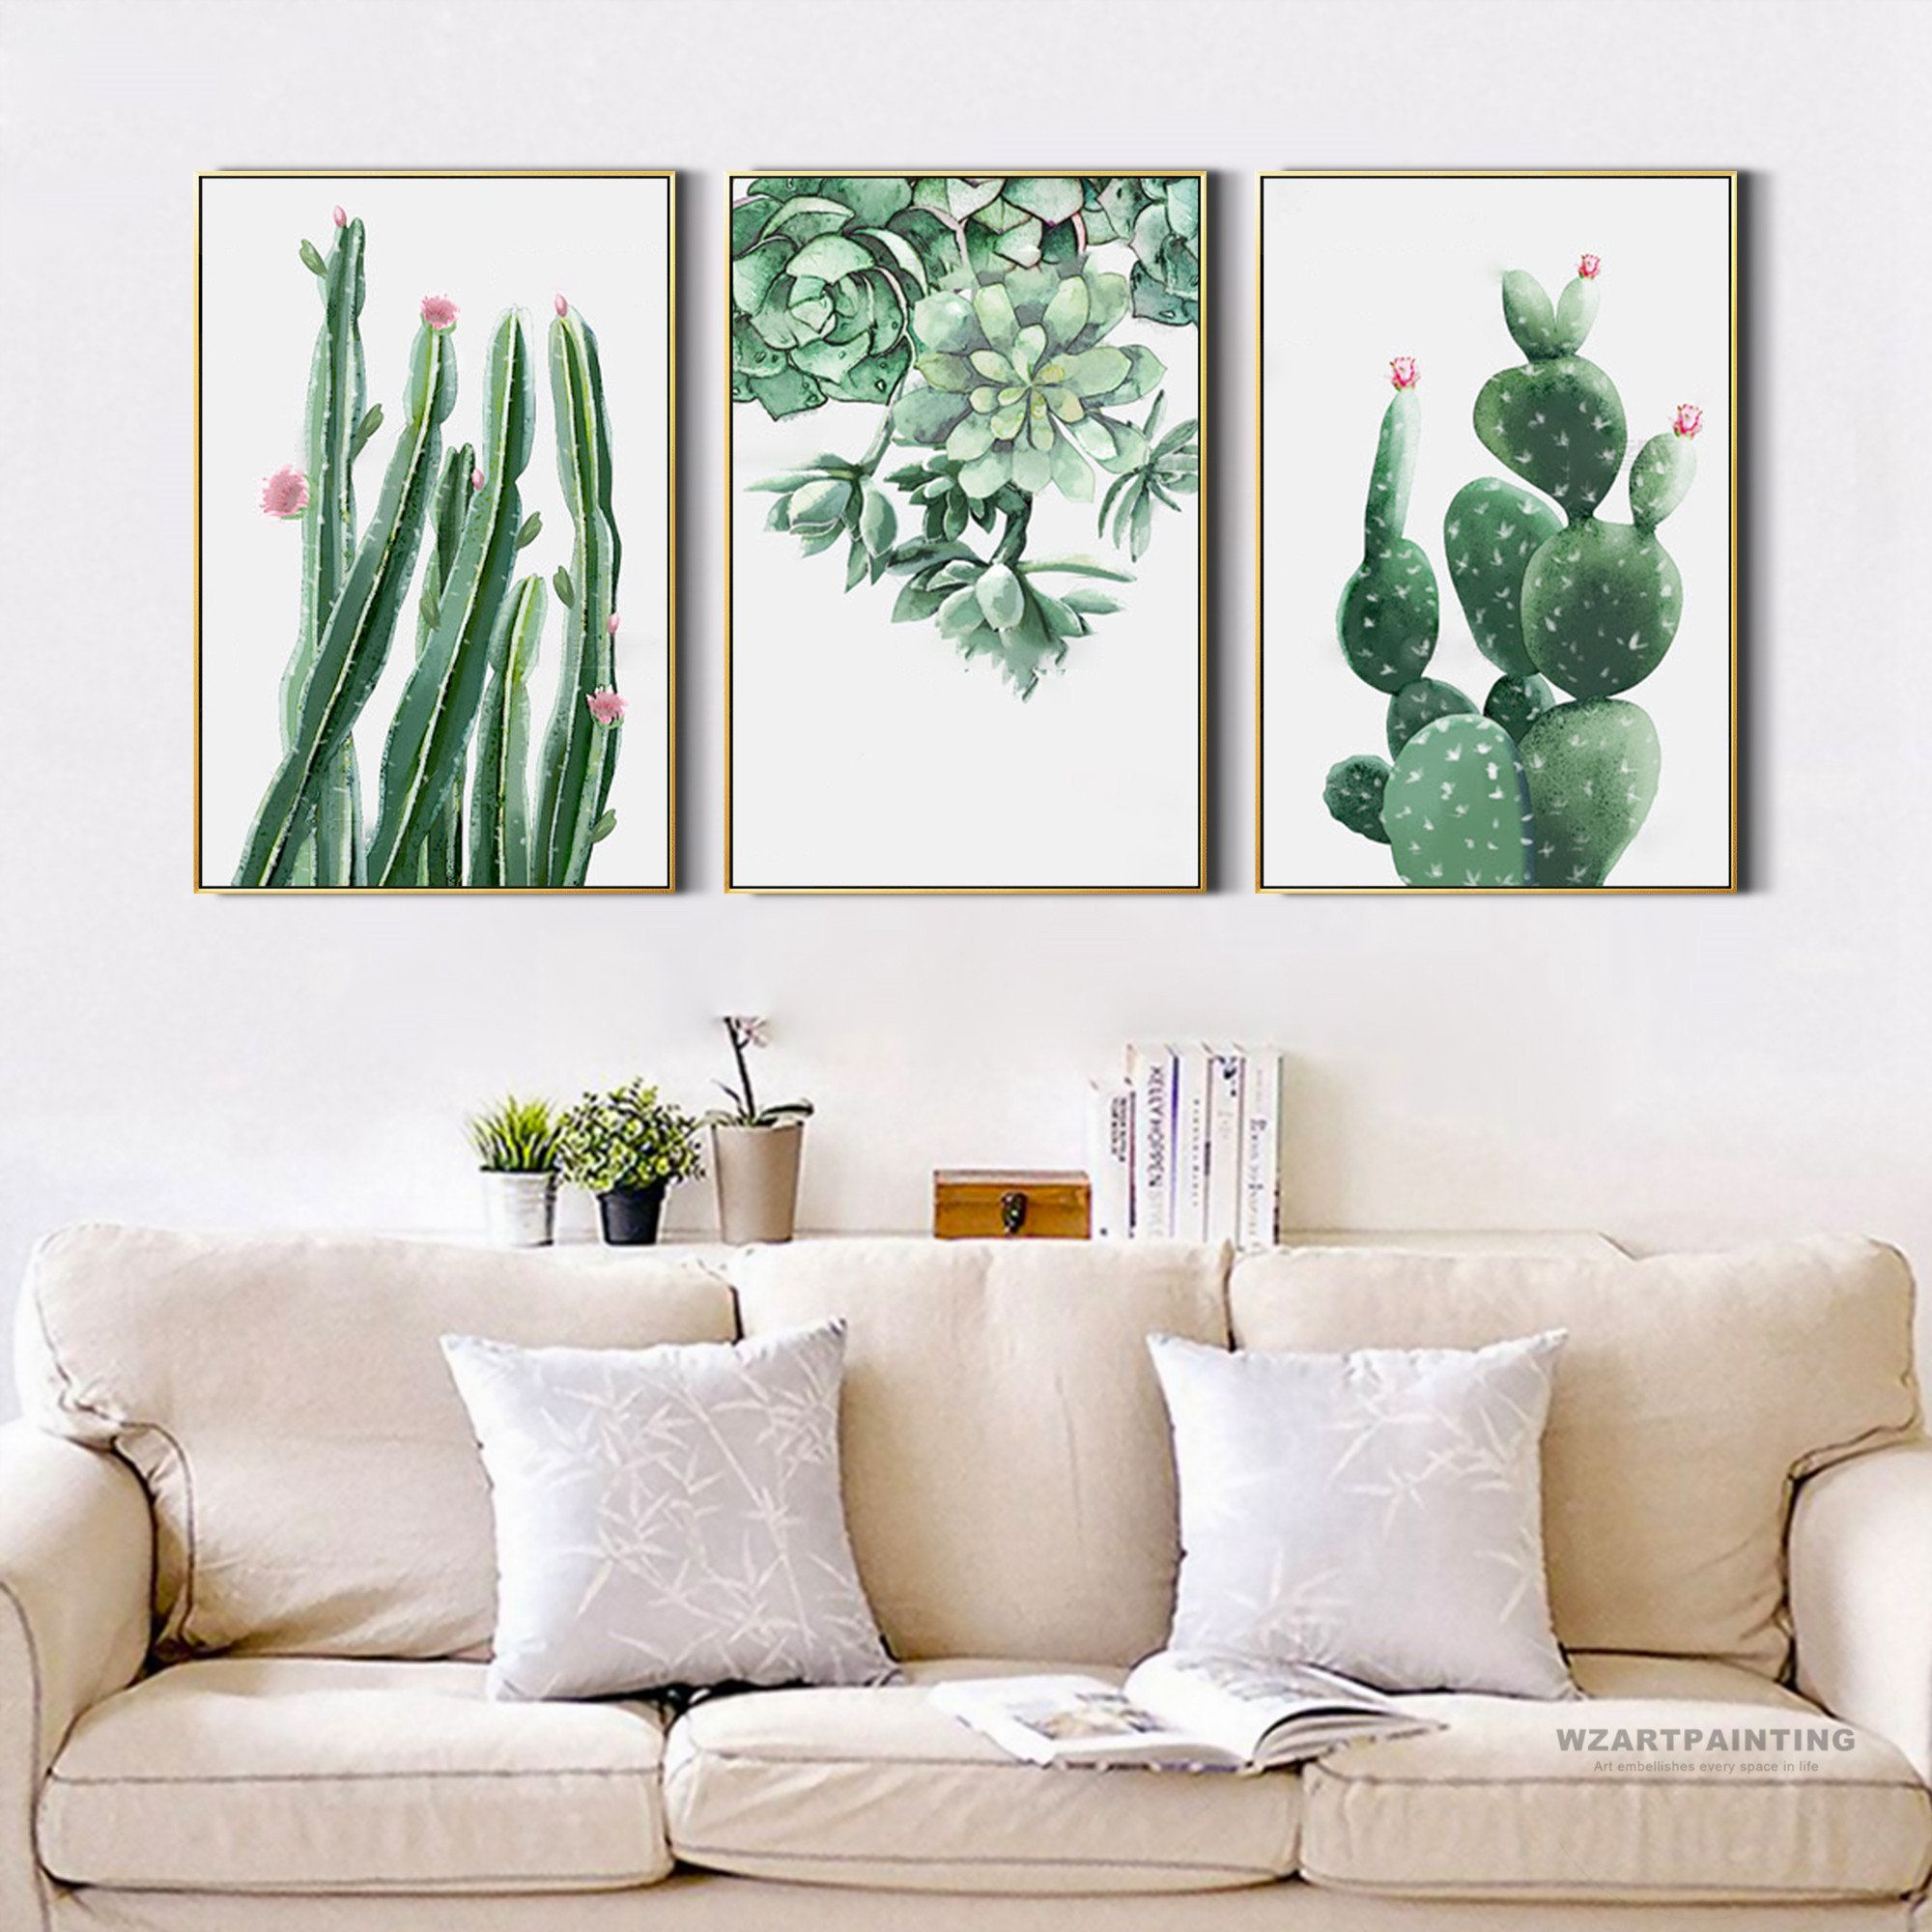 Framed wall art set of 3 prints modern nordic style cactus